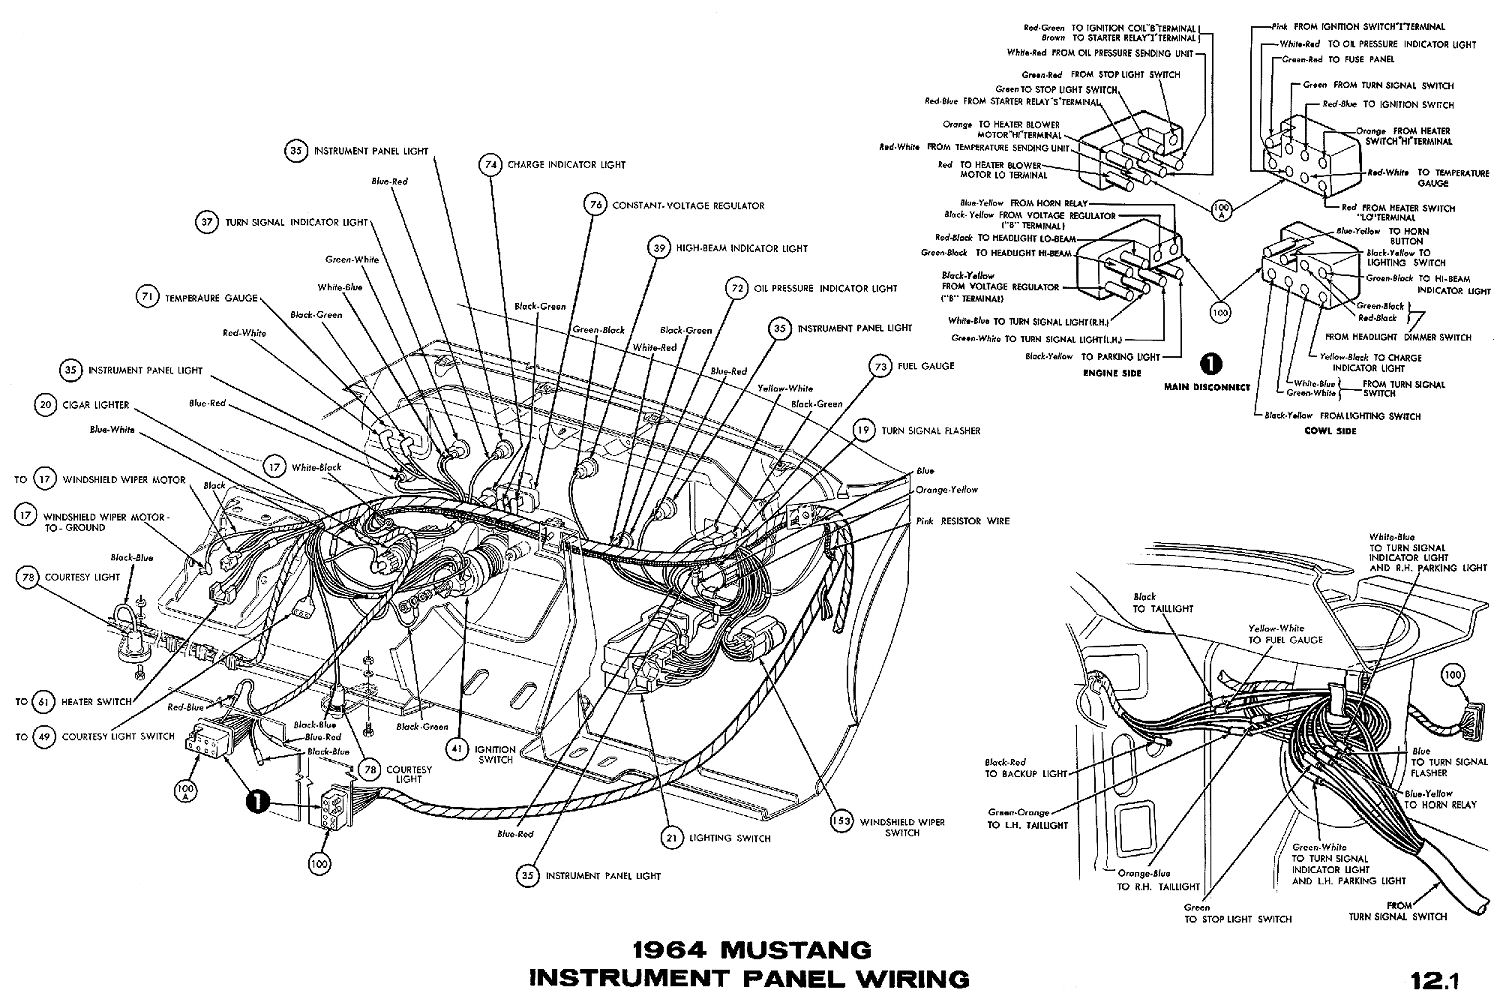 1971 Ford Maverick Wiring Diagram. Ford. Wiring Diagram Images